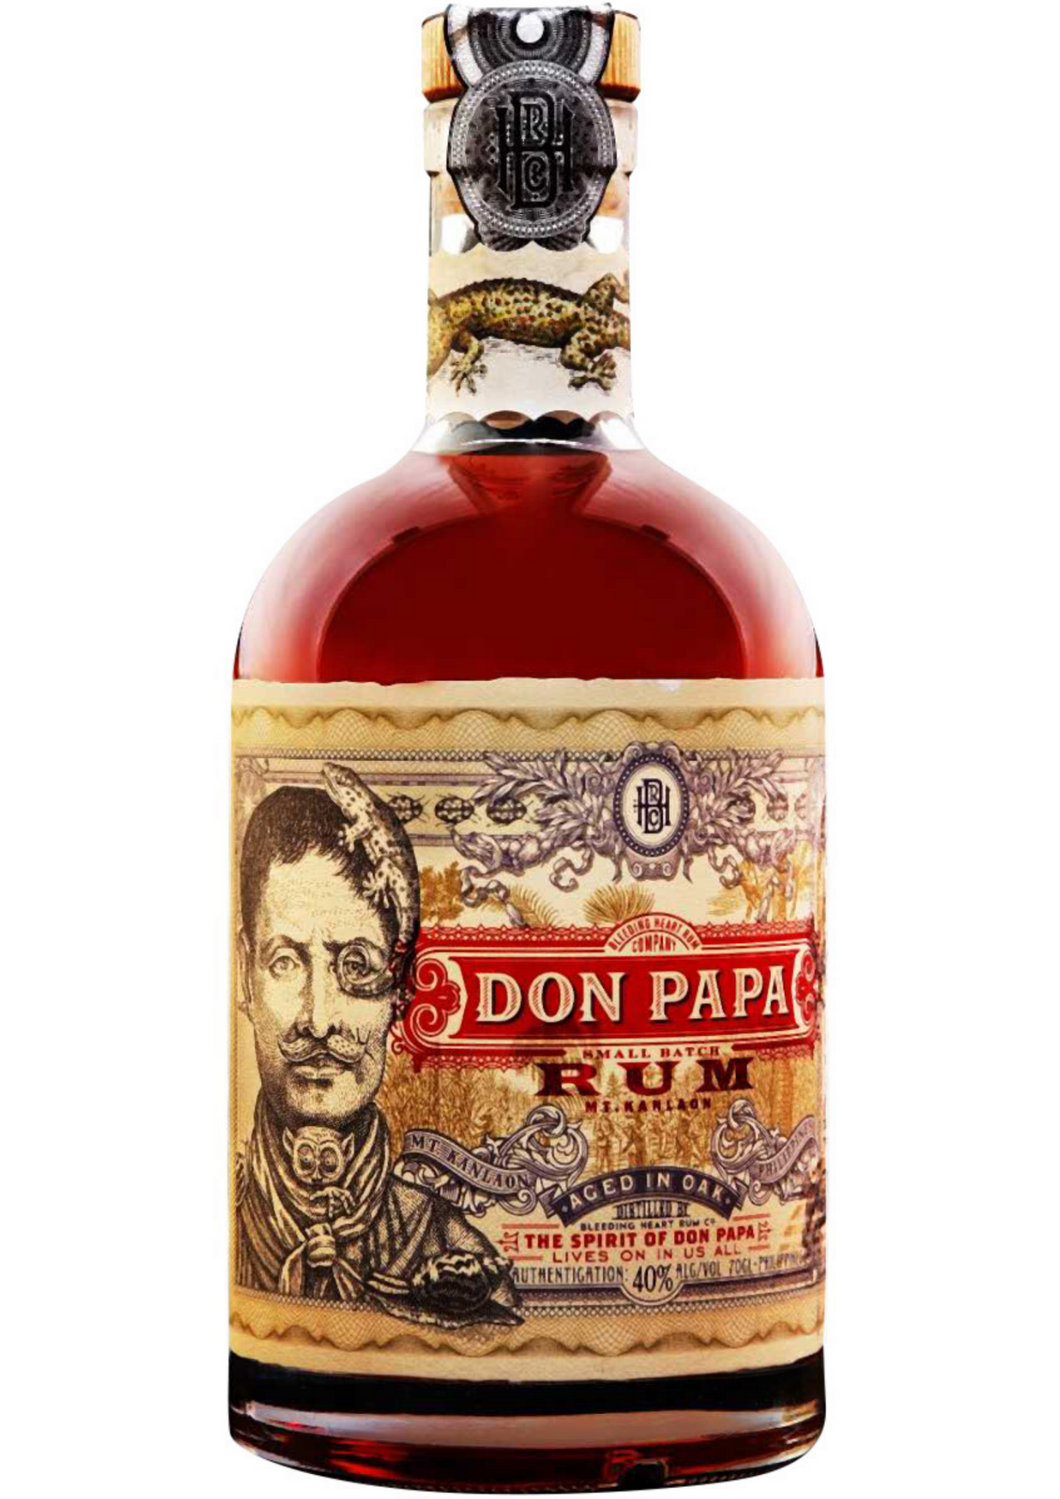 Don Papa Small Batch Rom - Vine0nline